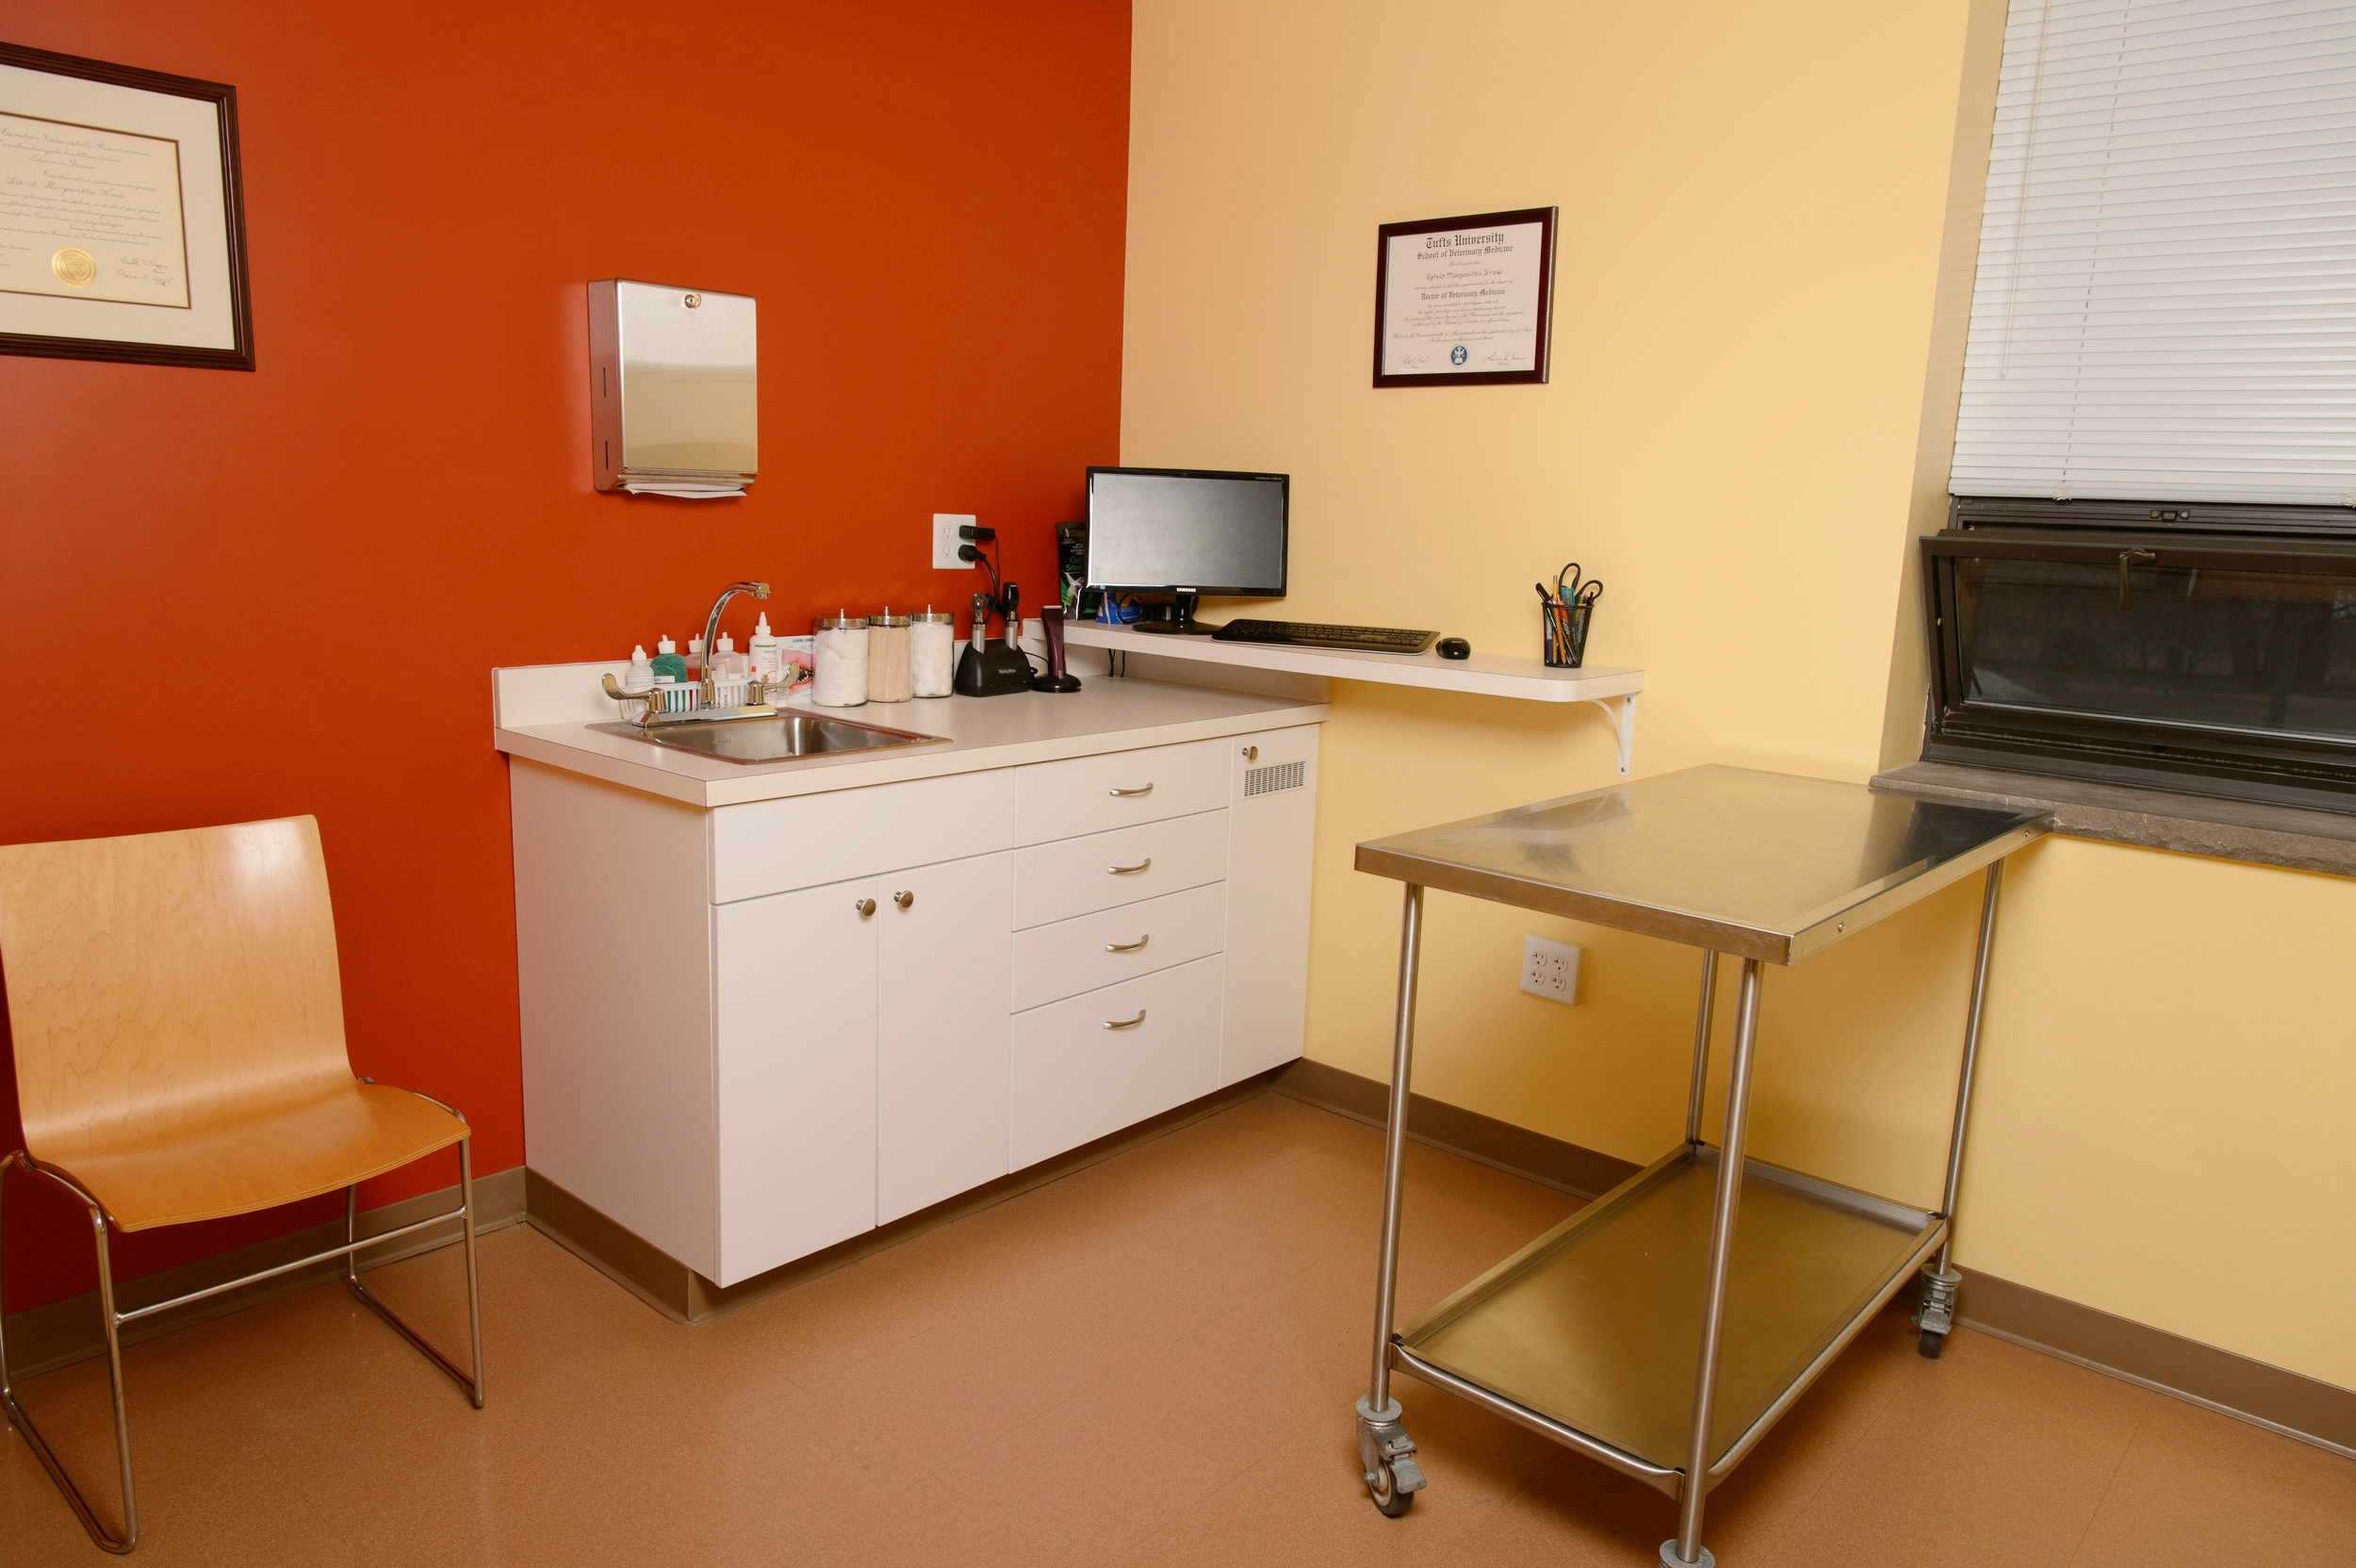 Our exam rooms are spacious, comfortable, and fully equipped